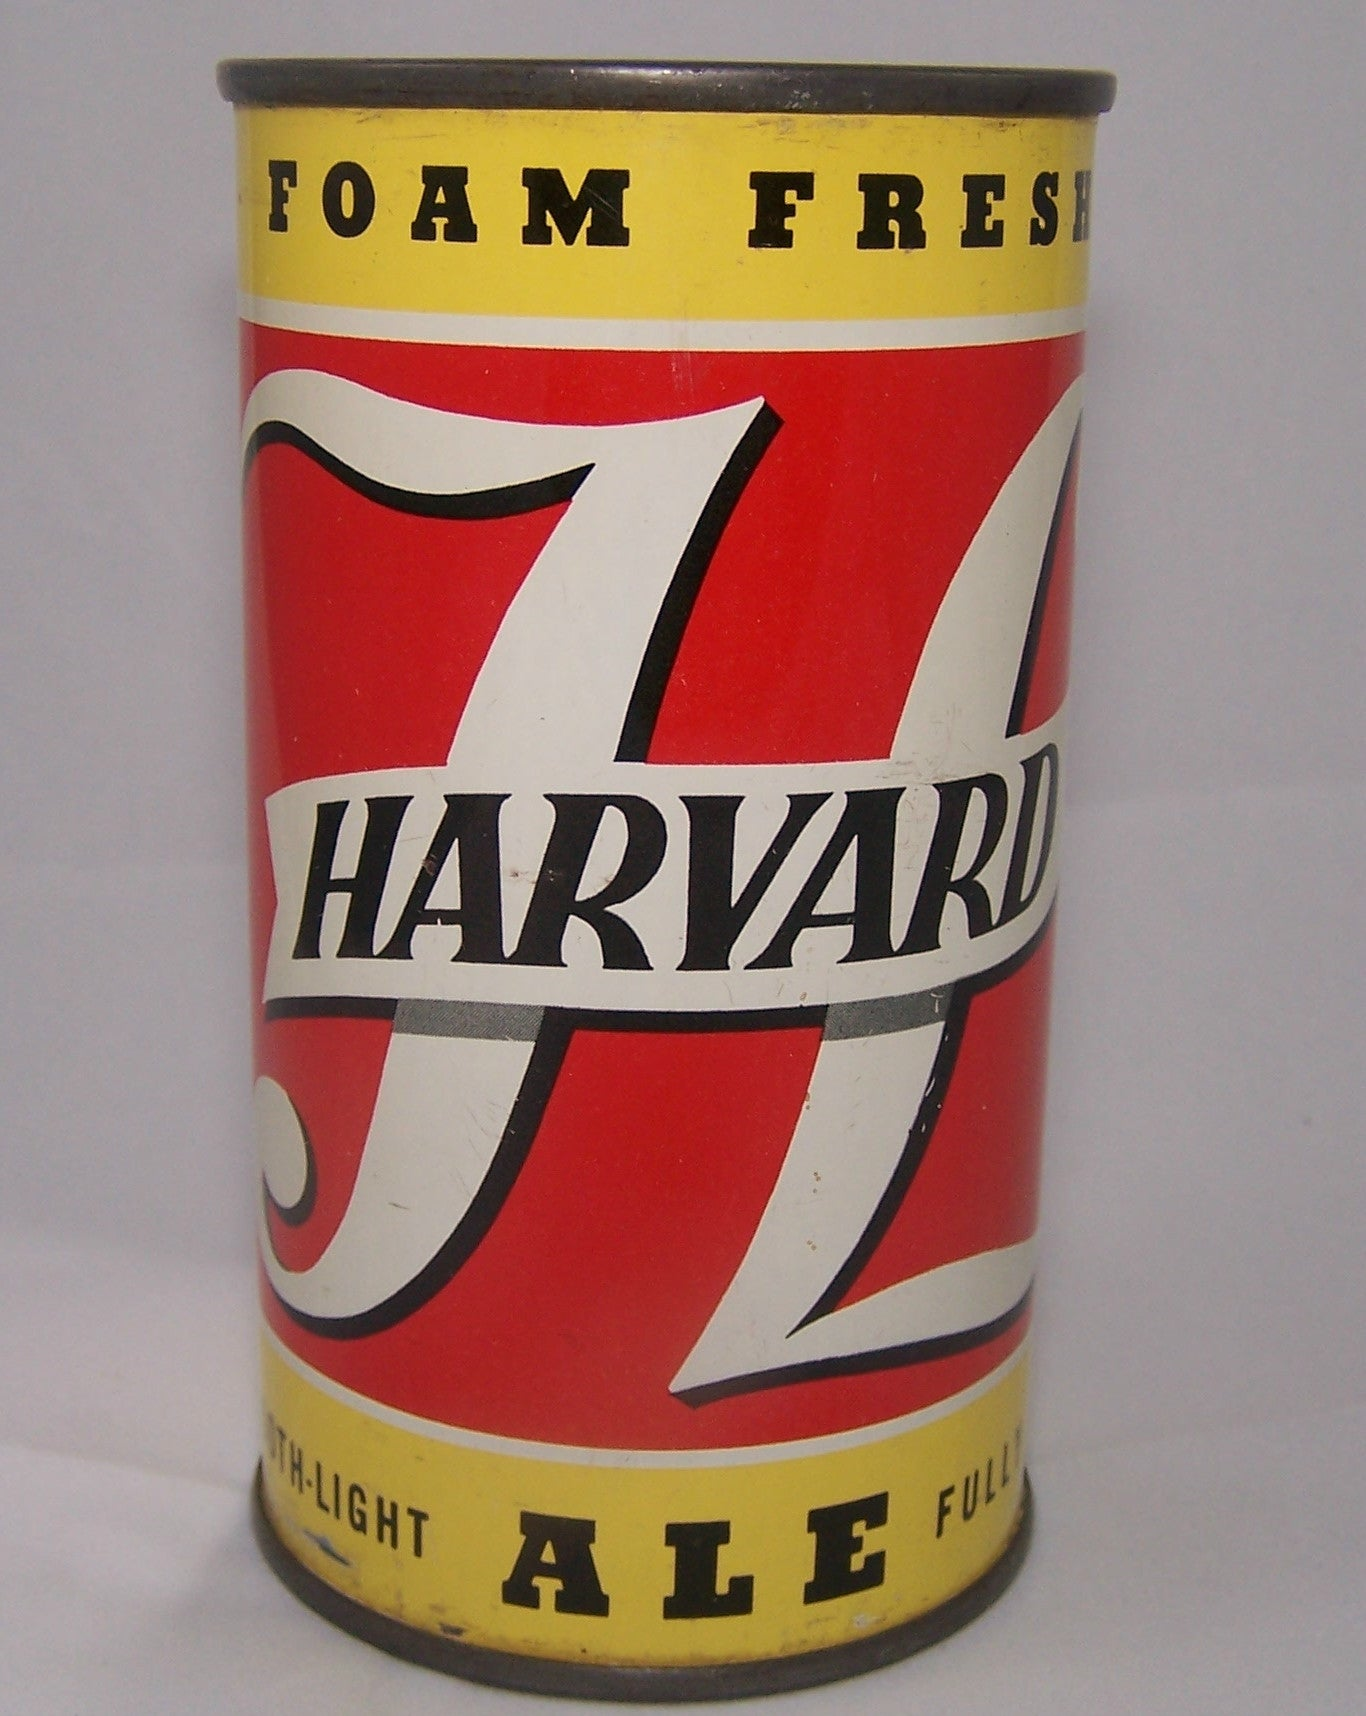 Harvard Ale Foam Fresh, USBC 80-31, Grade 1/1+ Sold 3/14/15